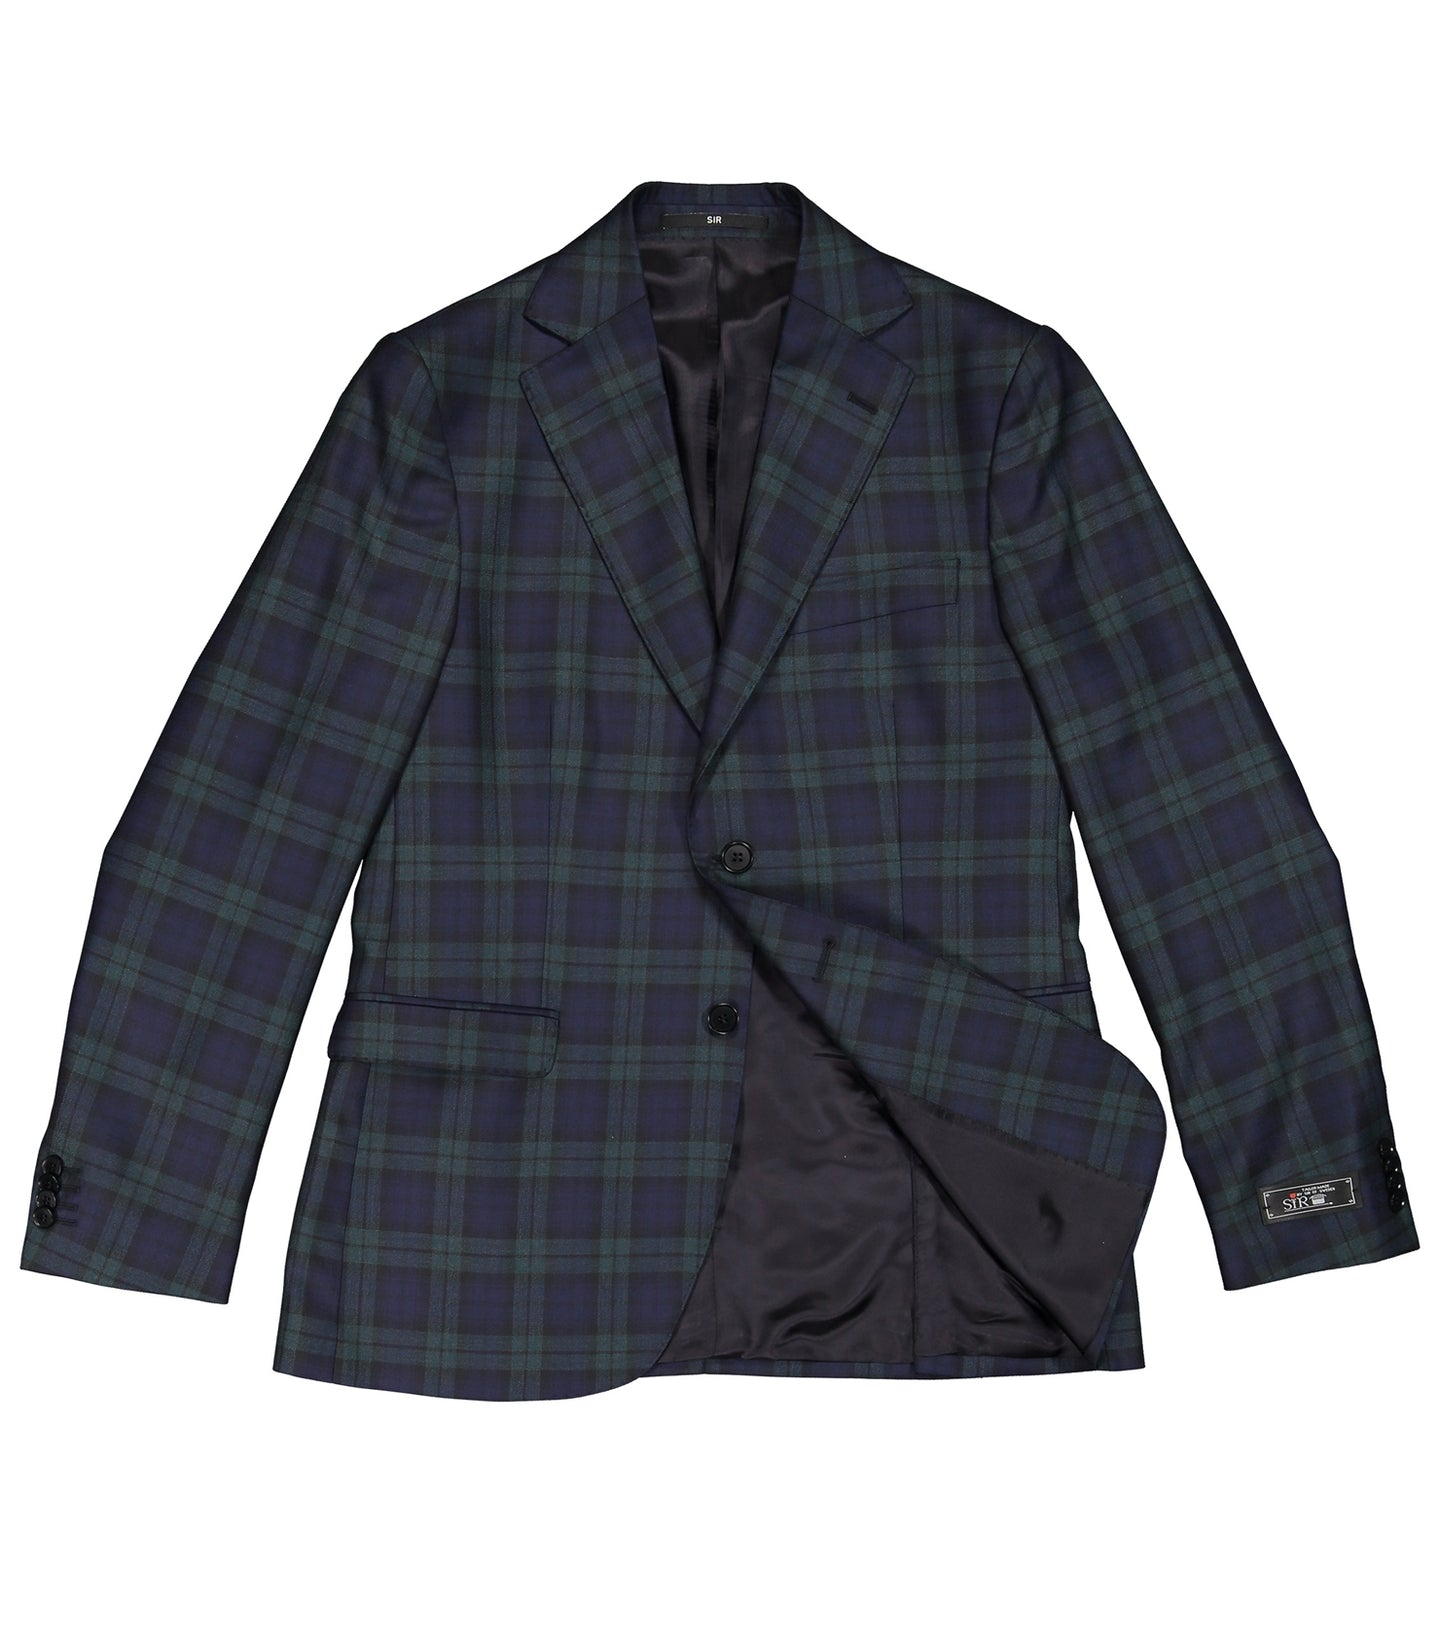 Eliot Blackwatch Jacket